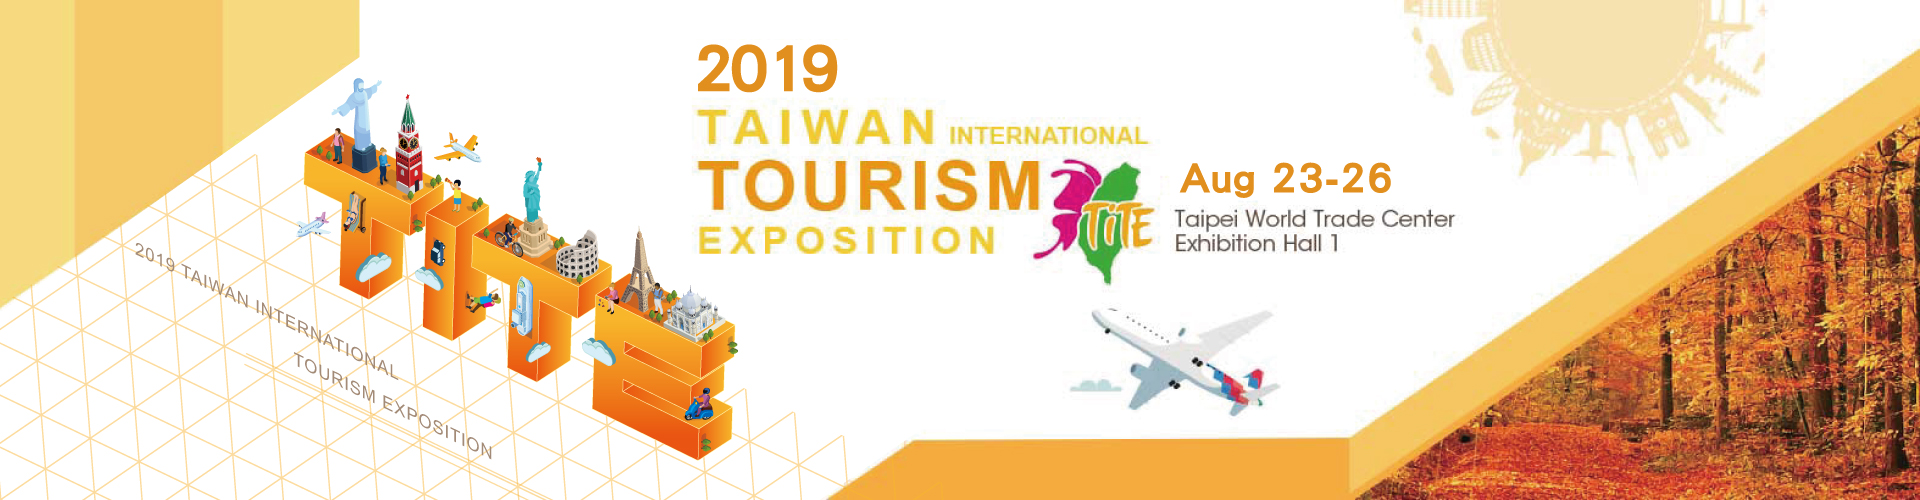 Taiwan International Tourism Exposition (TITE)